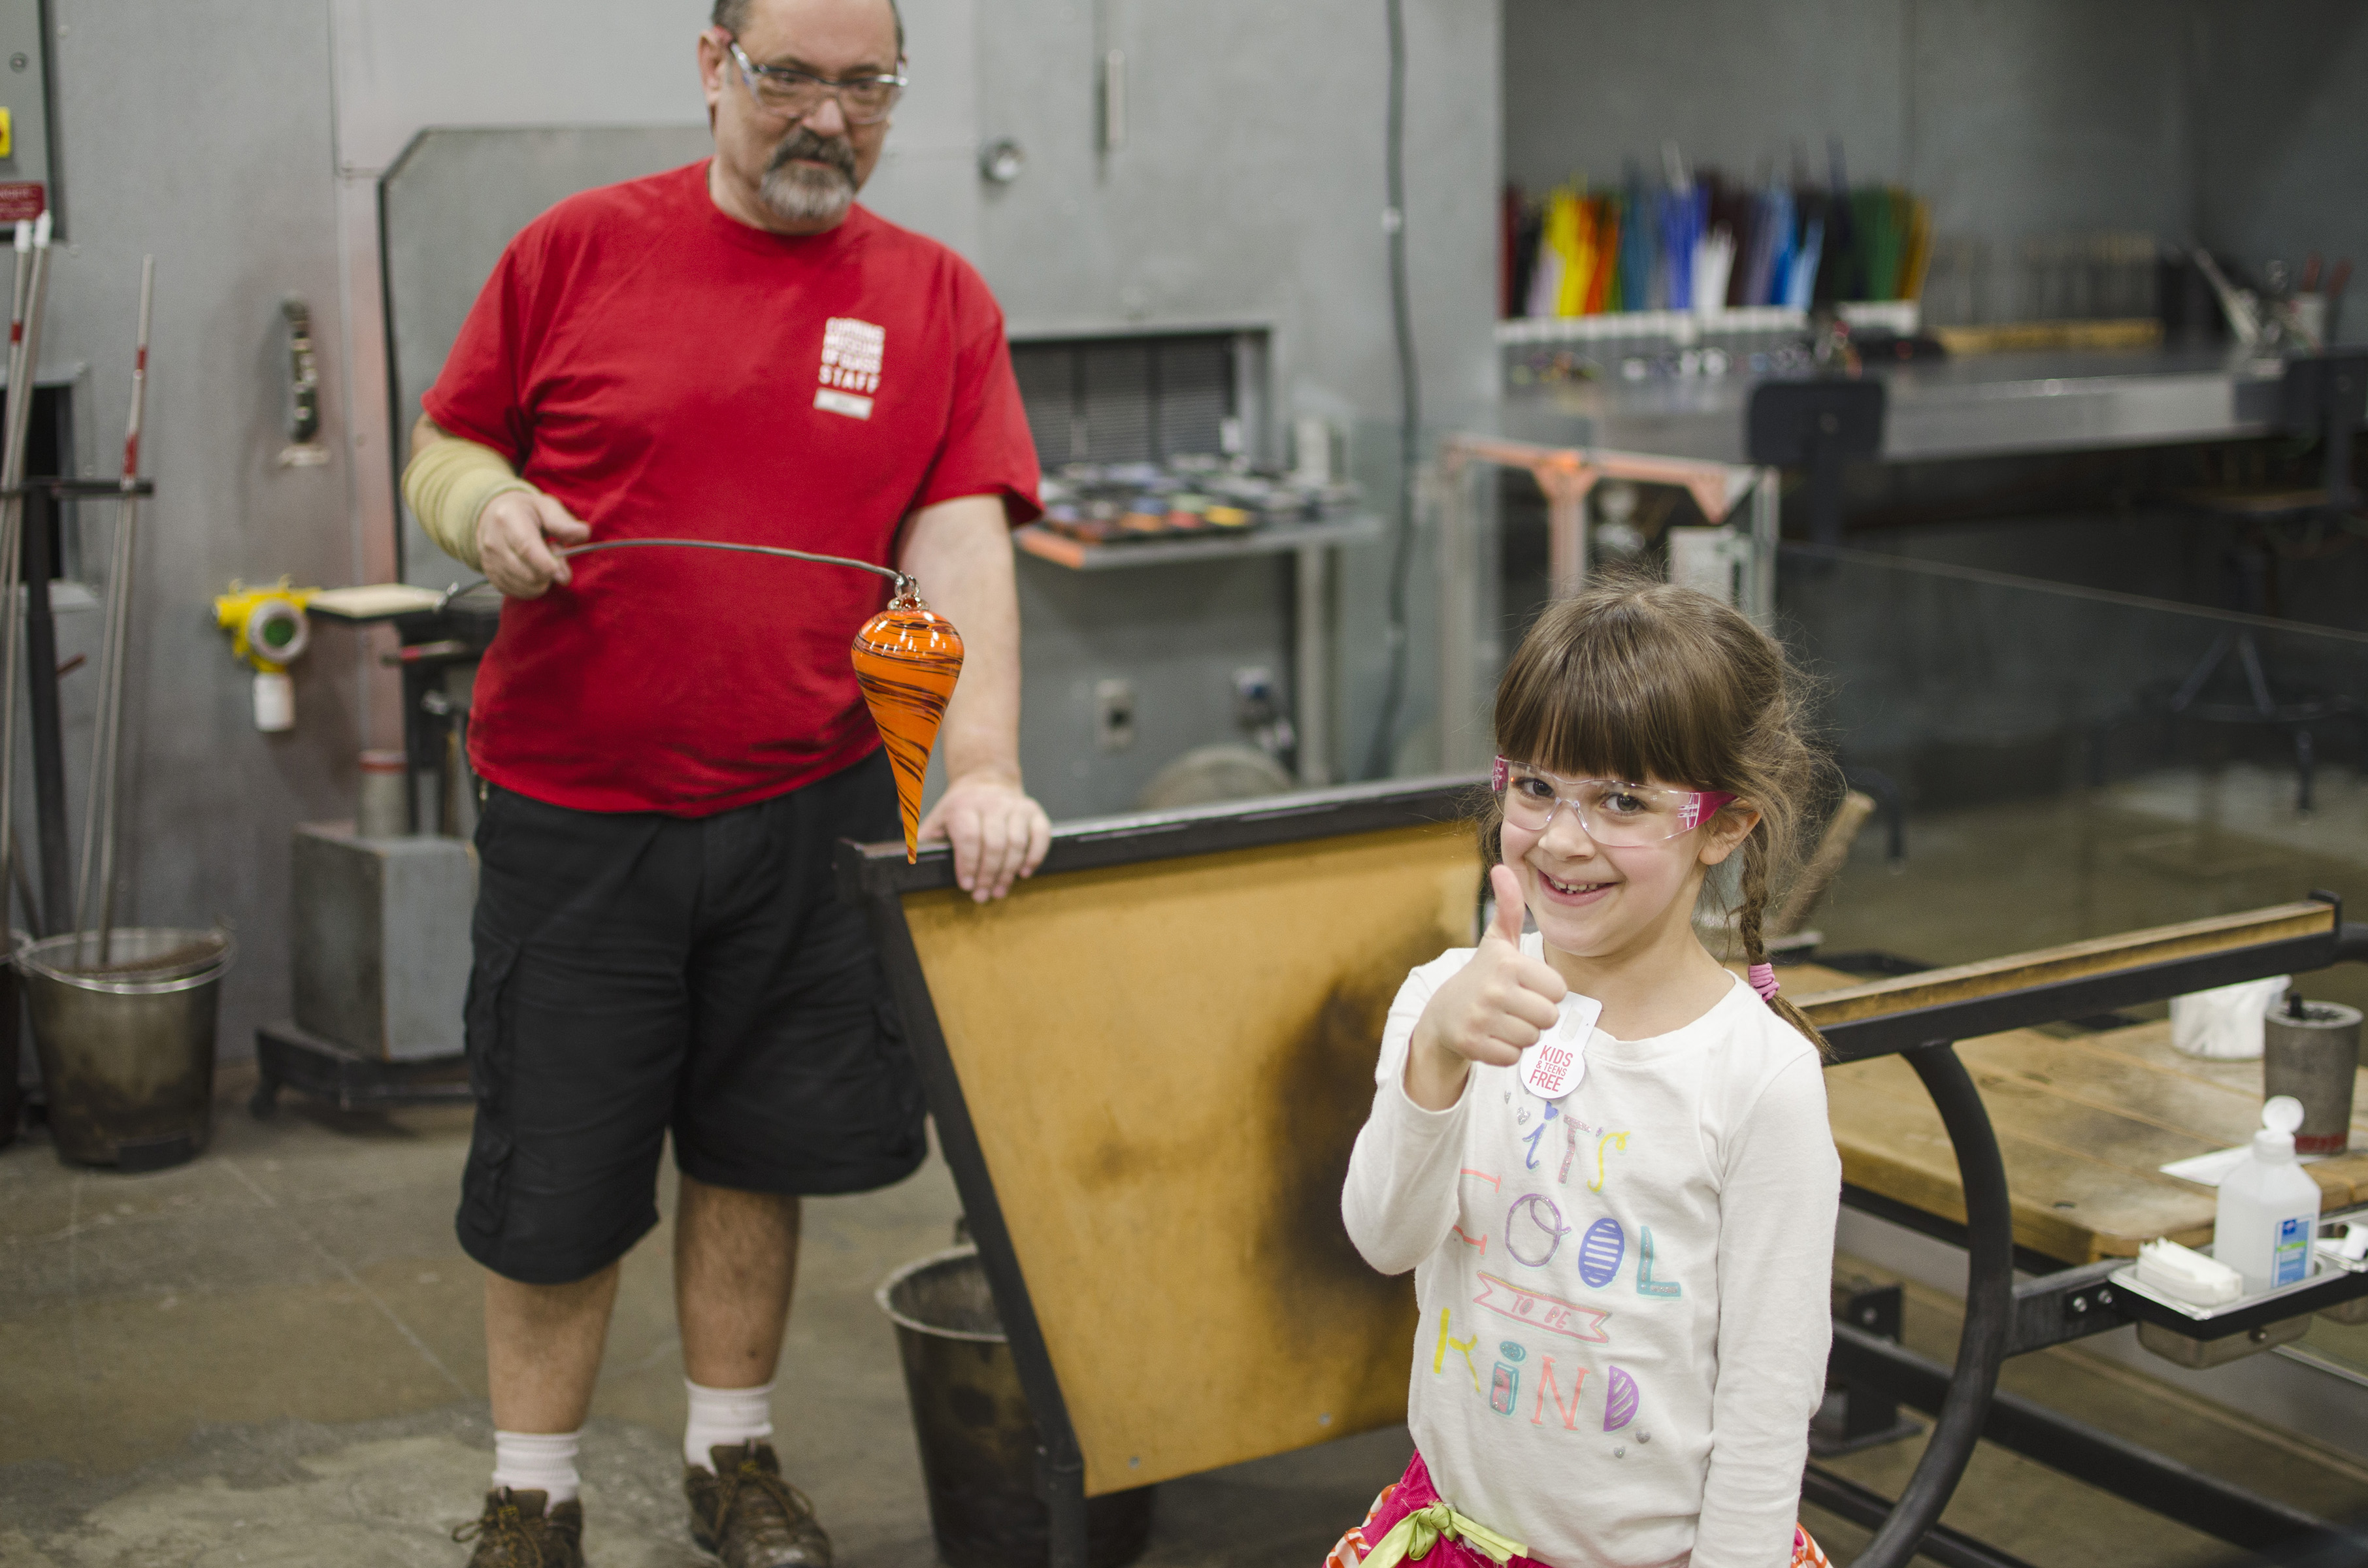 Rediscovering CMOG Through The Eyes Of A Child